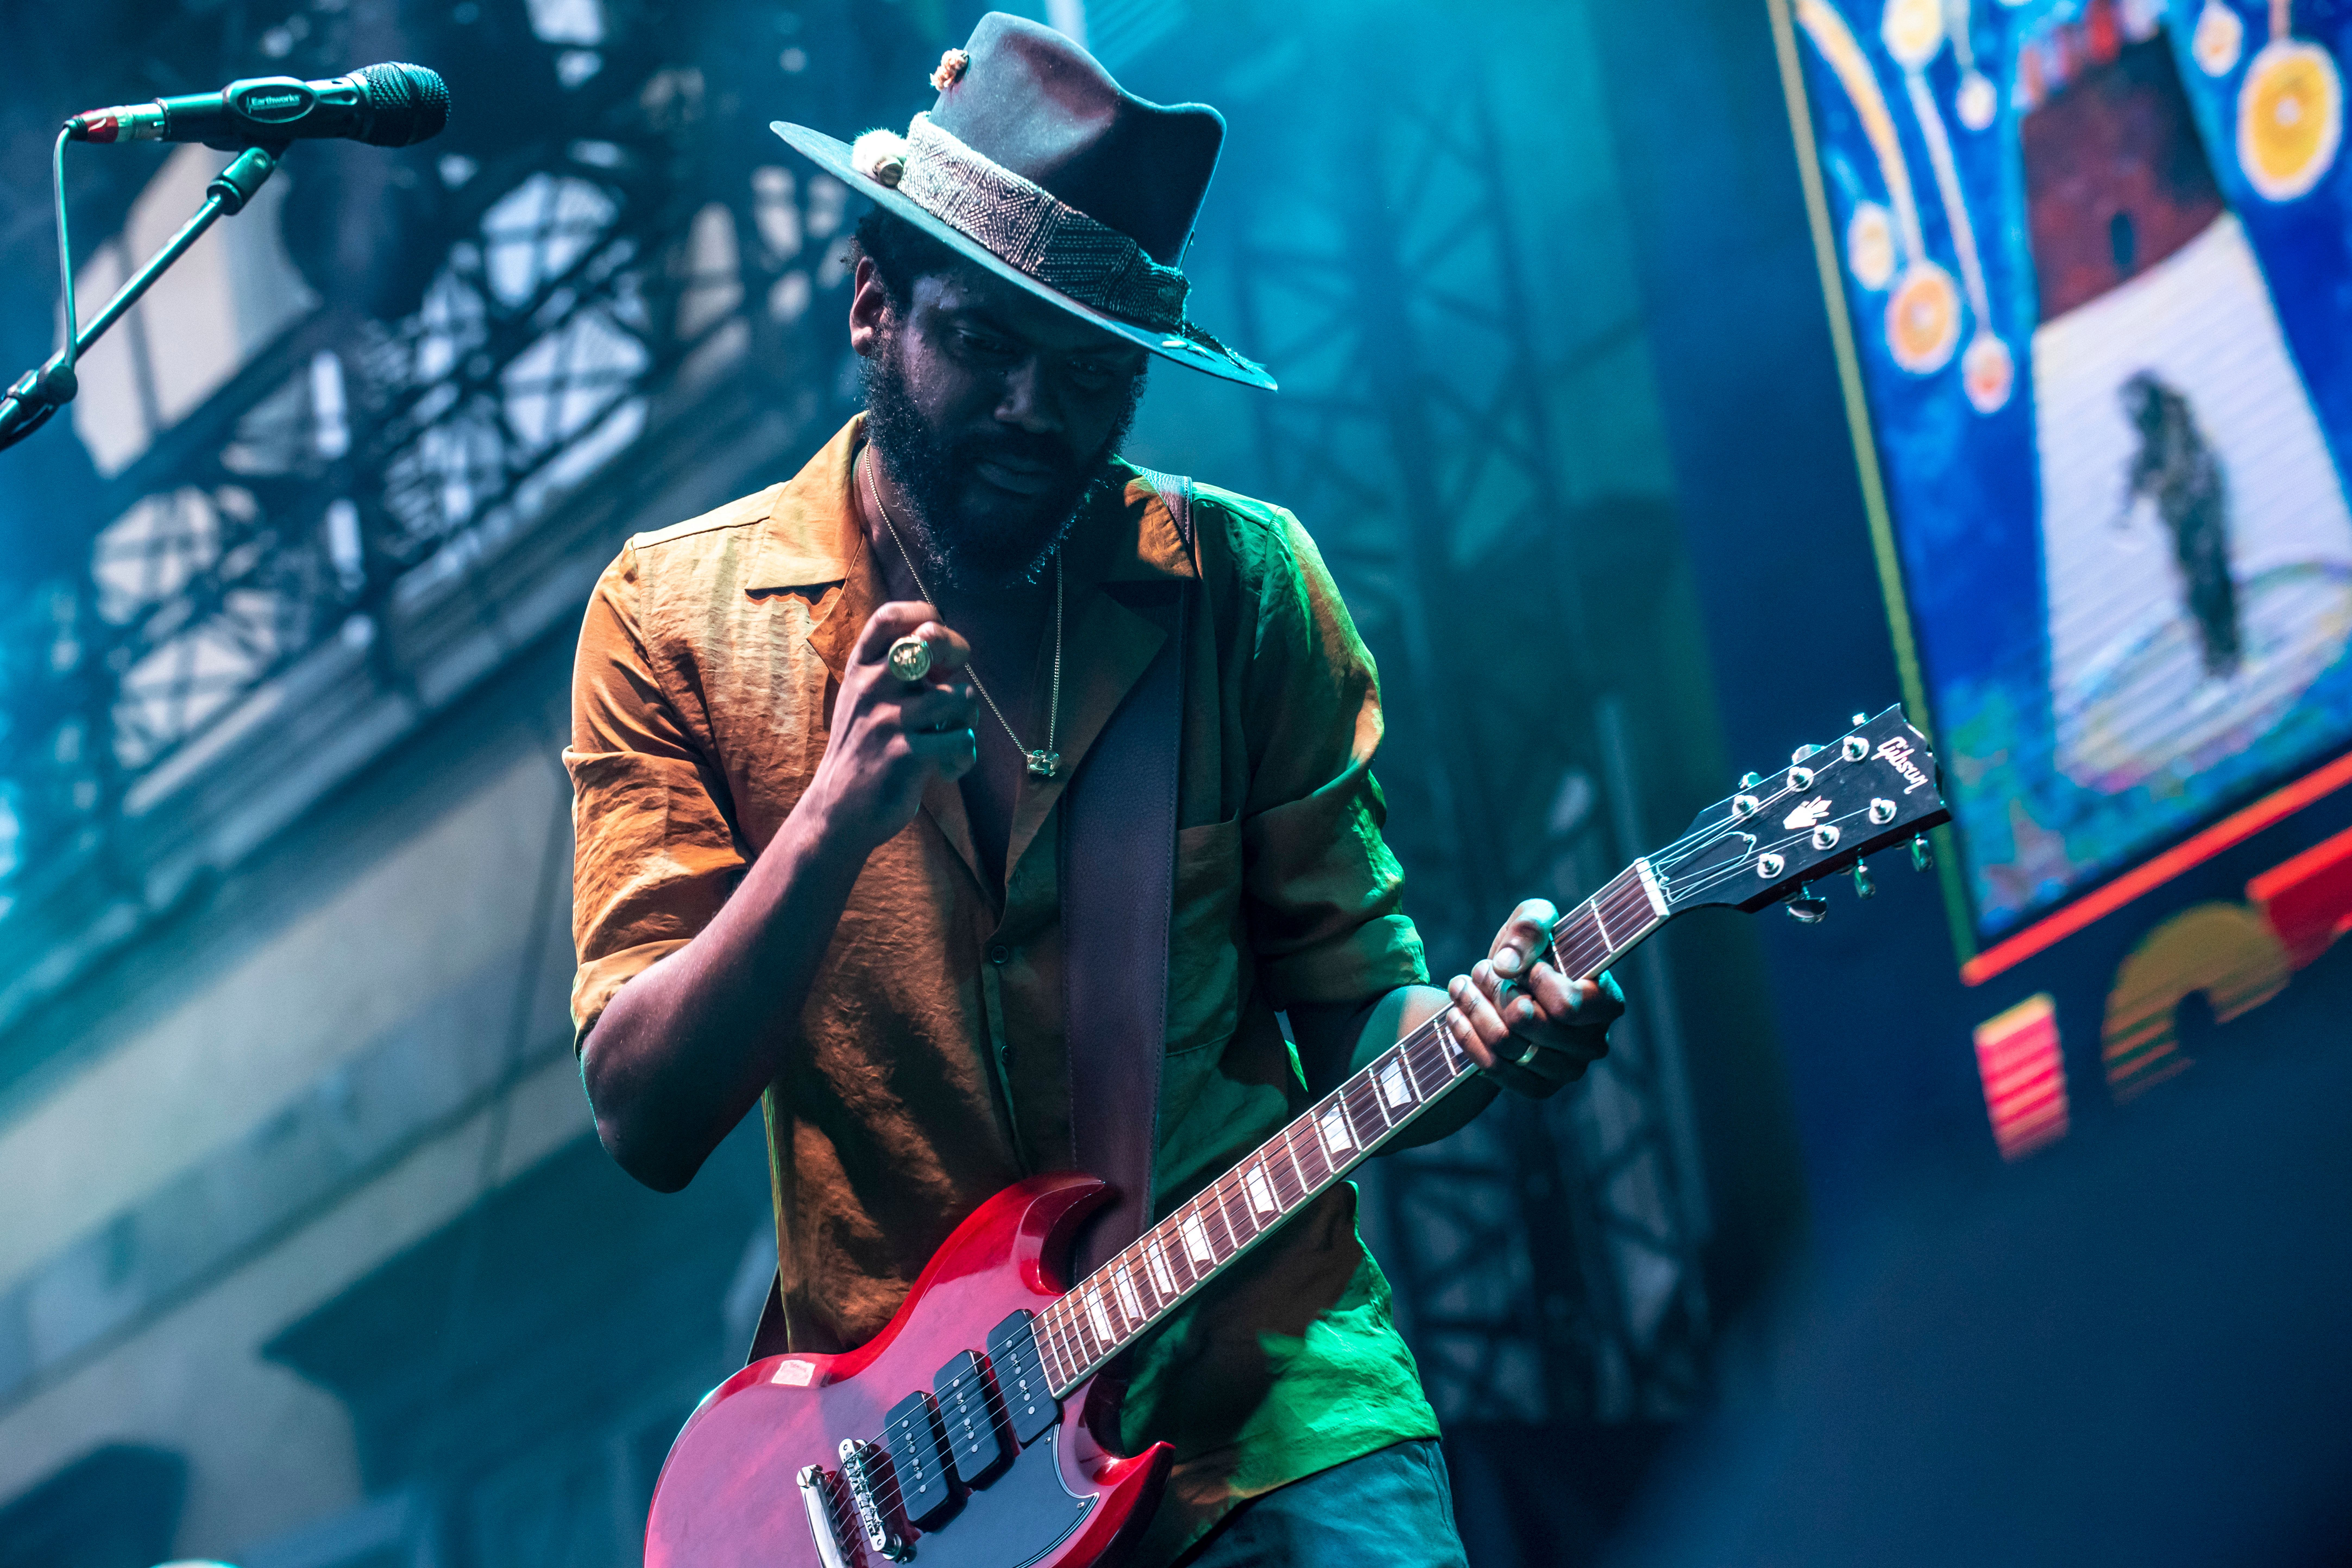 LUCCA, ITALY - JULY 18:  Gary Clark Jr. performs as the opening act for Lenny Kravitz  during the Lucca Summer Festival at Piazza Napoleone on July 18, 2018 in Lucca, Italy.  (Photo by Francesco Prandoni/Redferns)